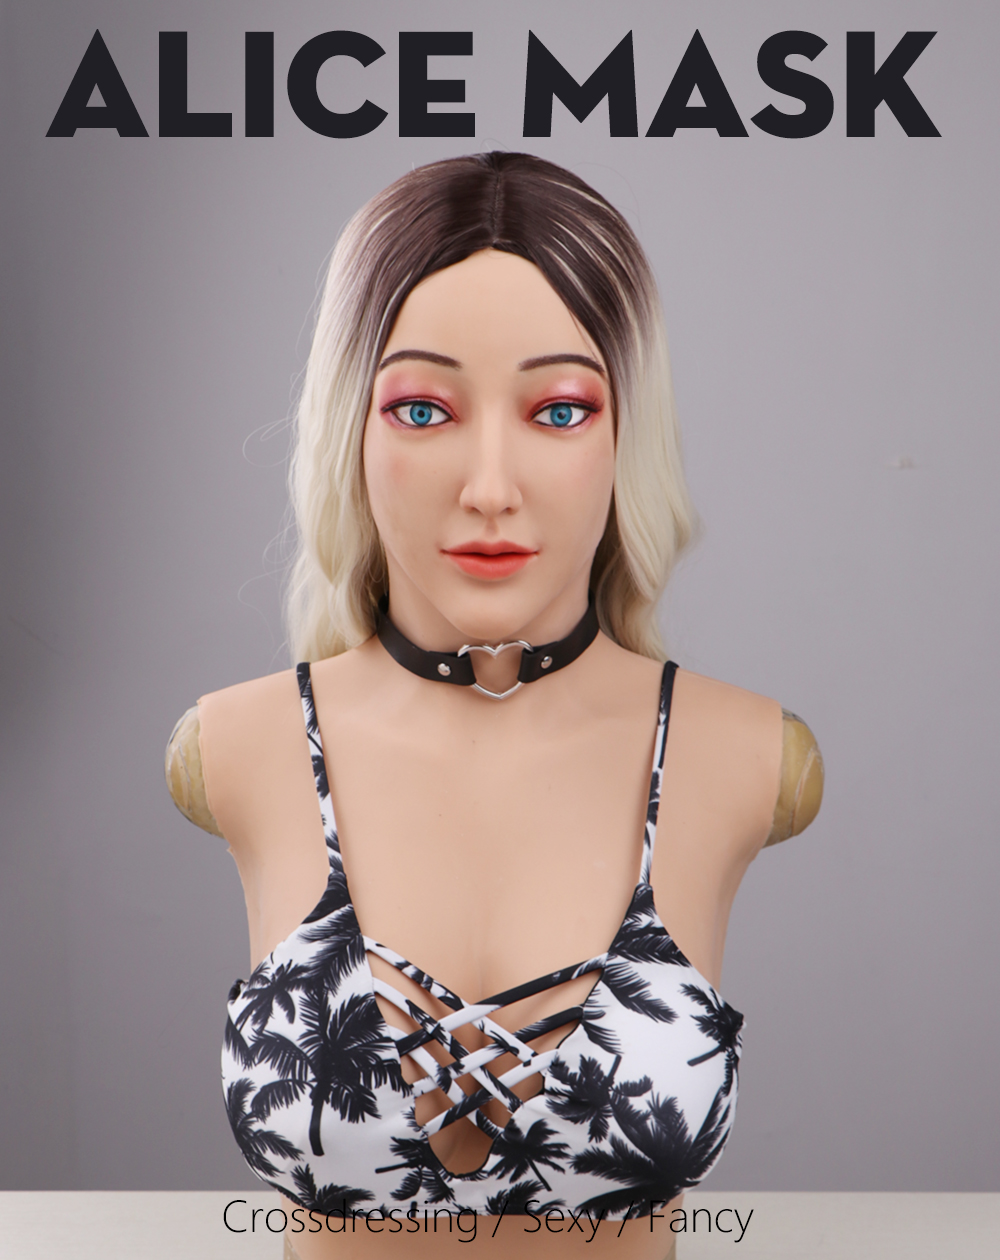 Eyung crossdresser silicon mask with d cup boobs realistic female goddess face human mask Halloween Masquerade party ball mask (1)